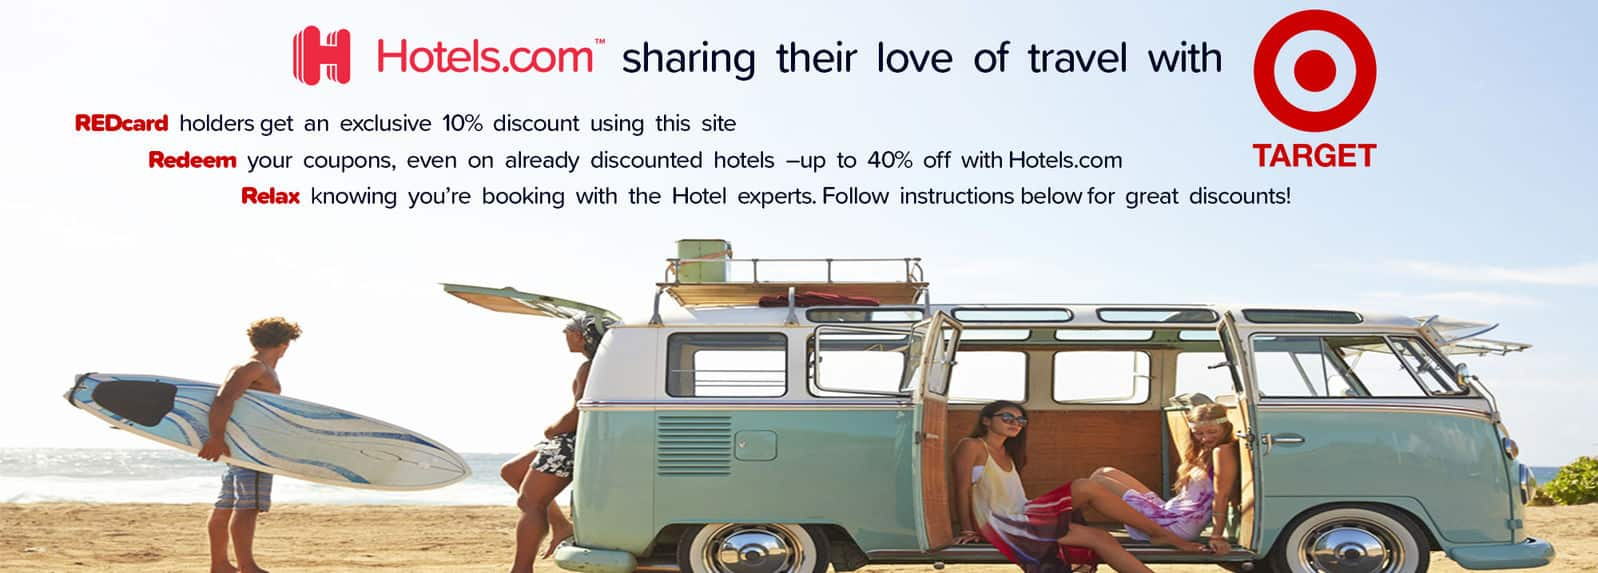 10% Off Hotels.com Stays for Redcard Holders